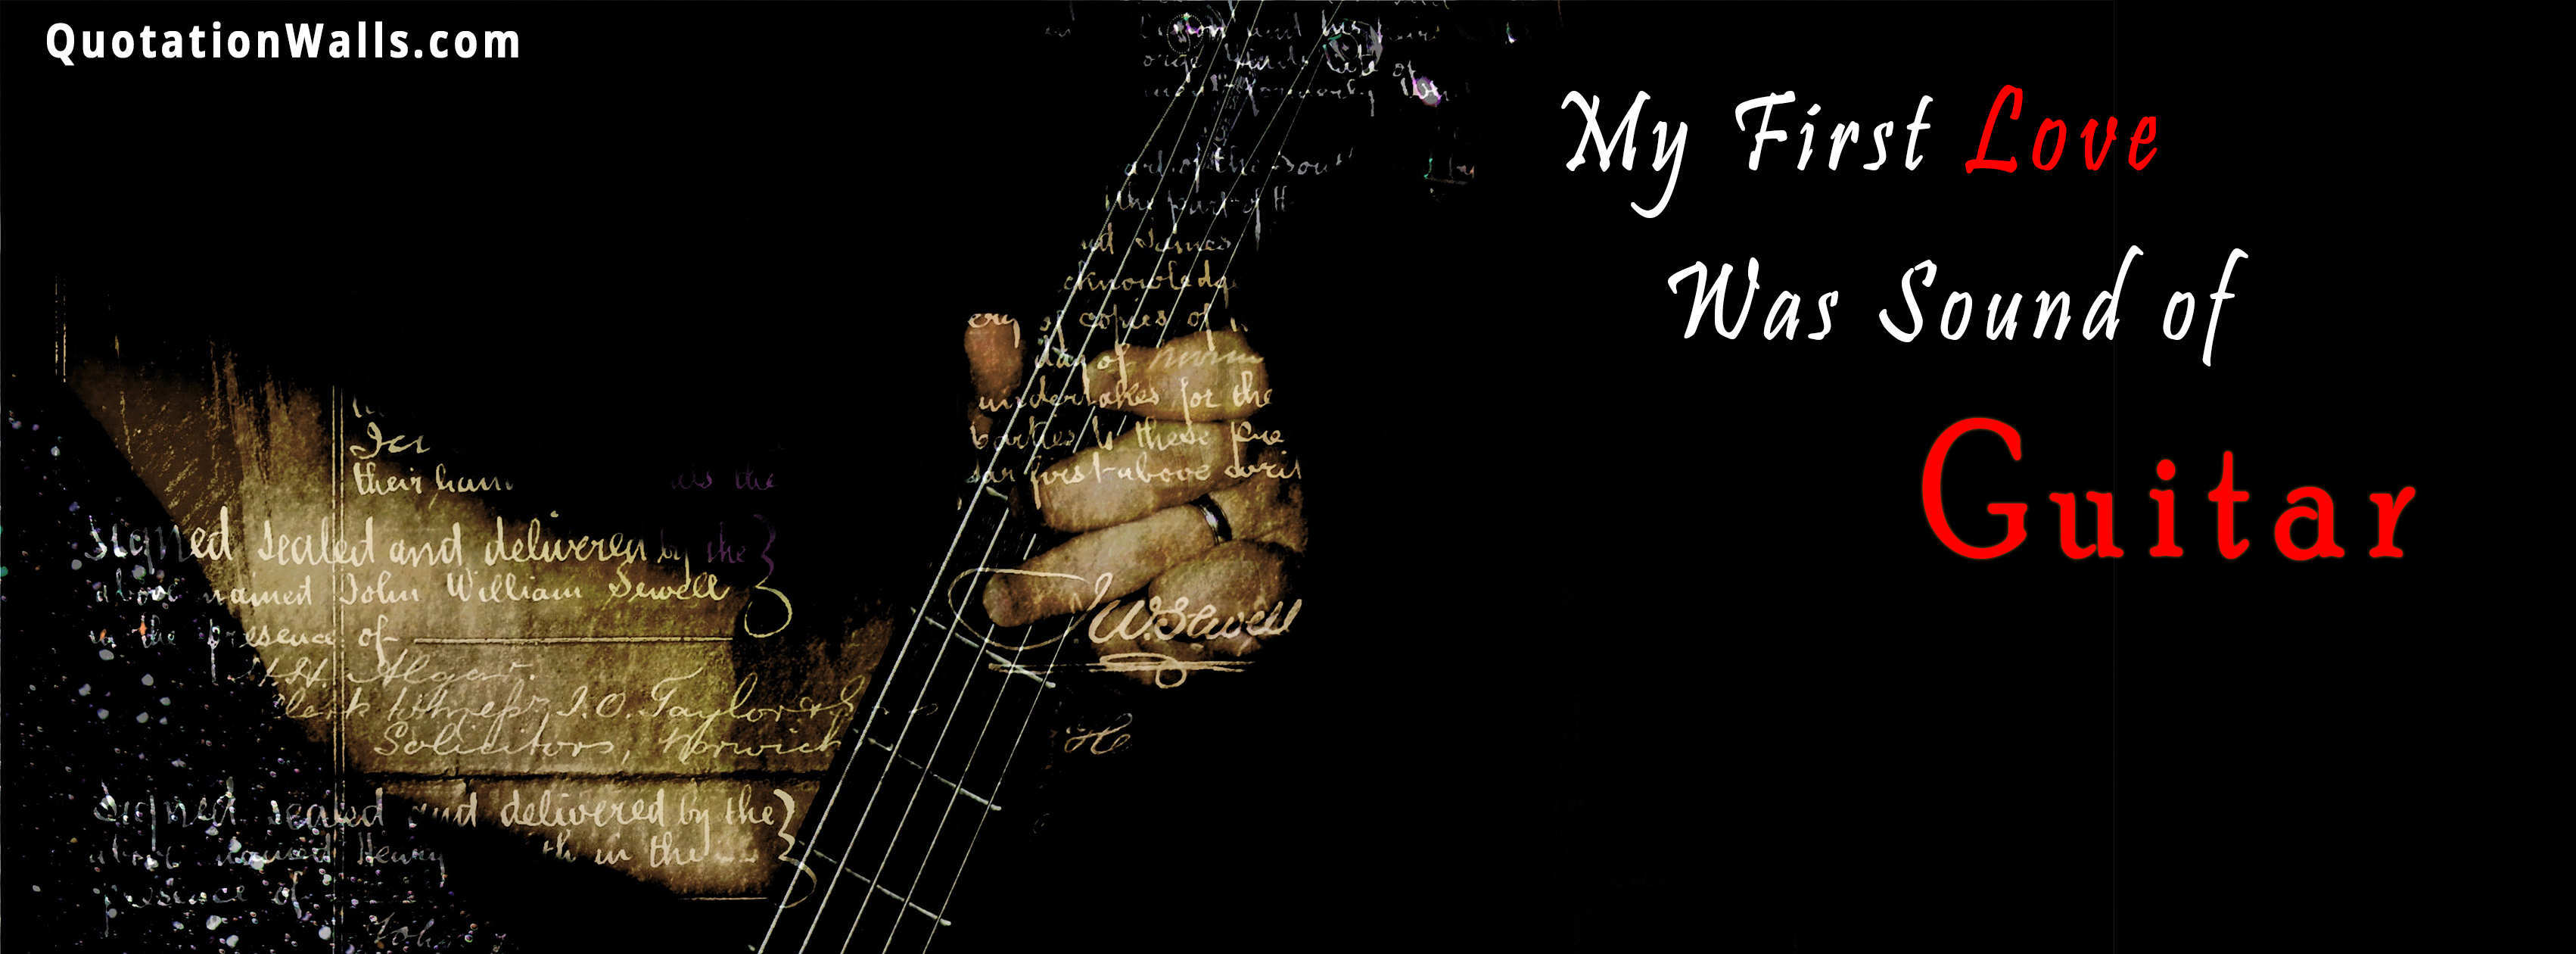 Guitar Love Love Facebook Cover Photo Quotationwalls